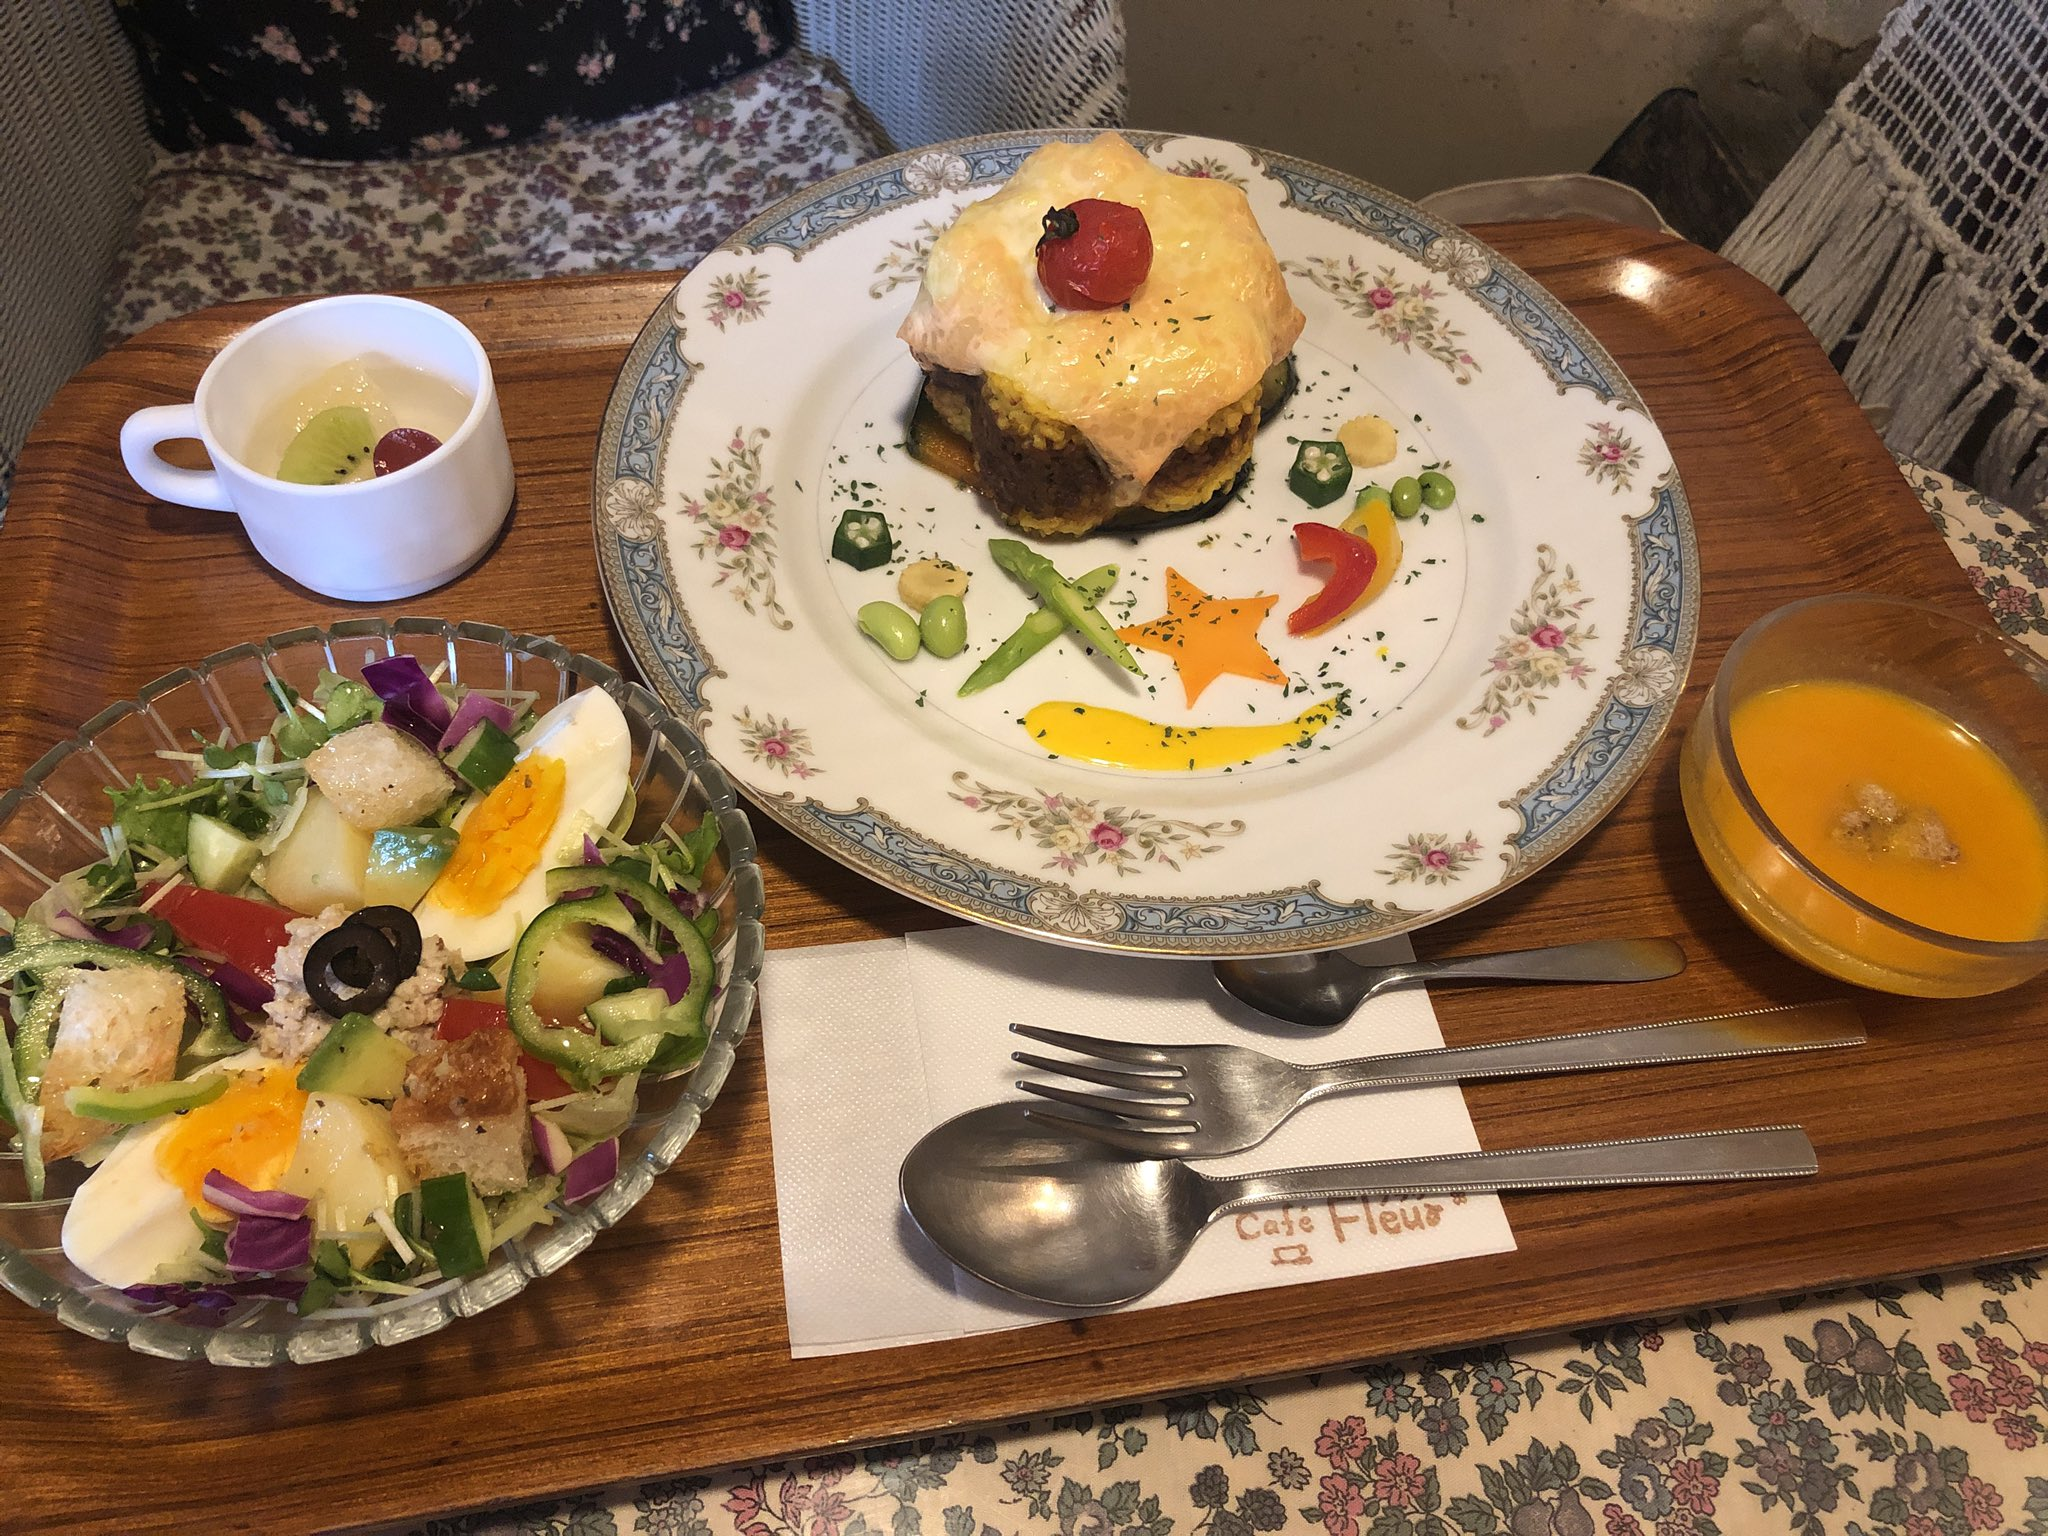 Cafe Fleurの週替わりランチ